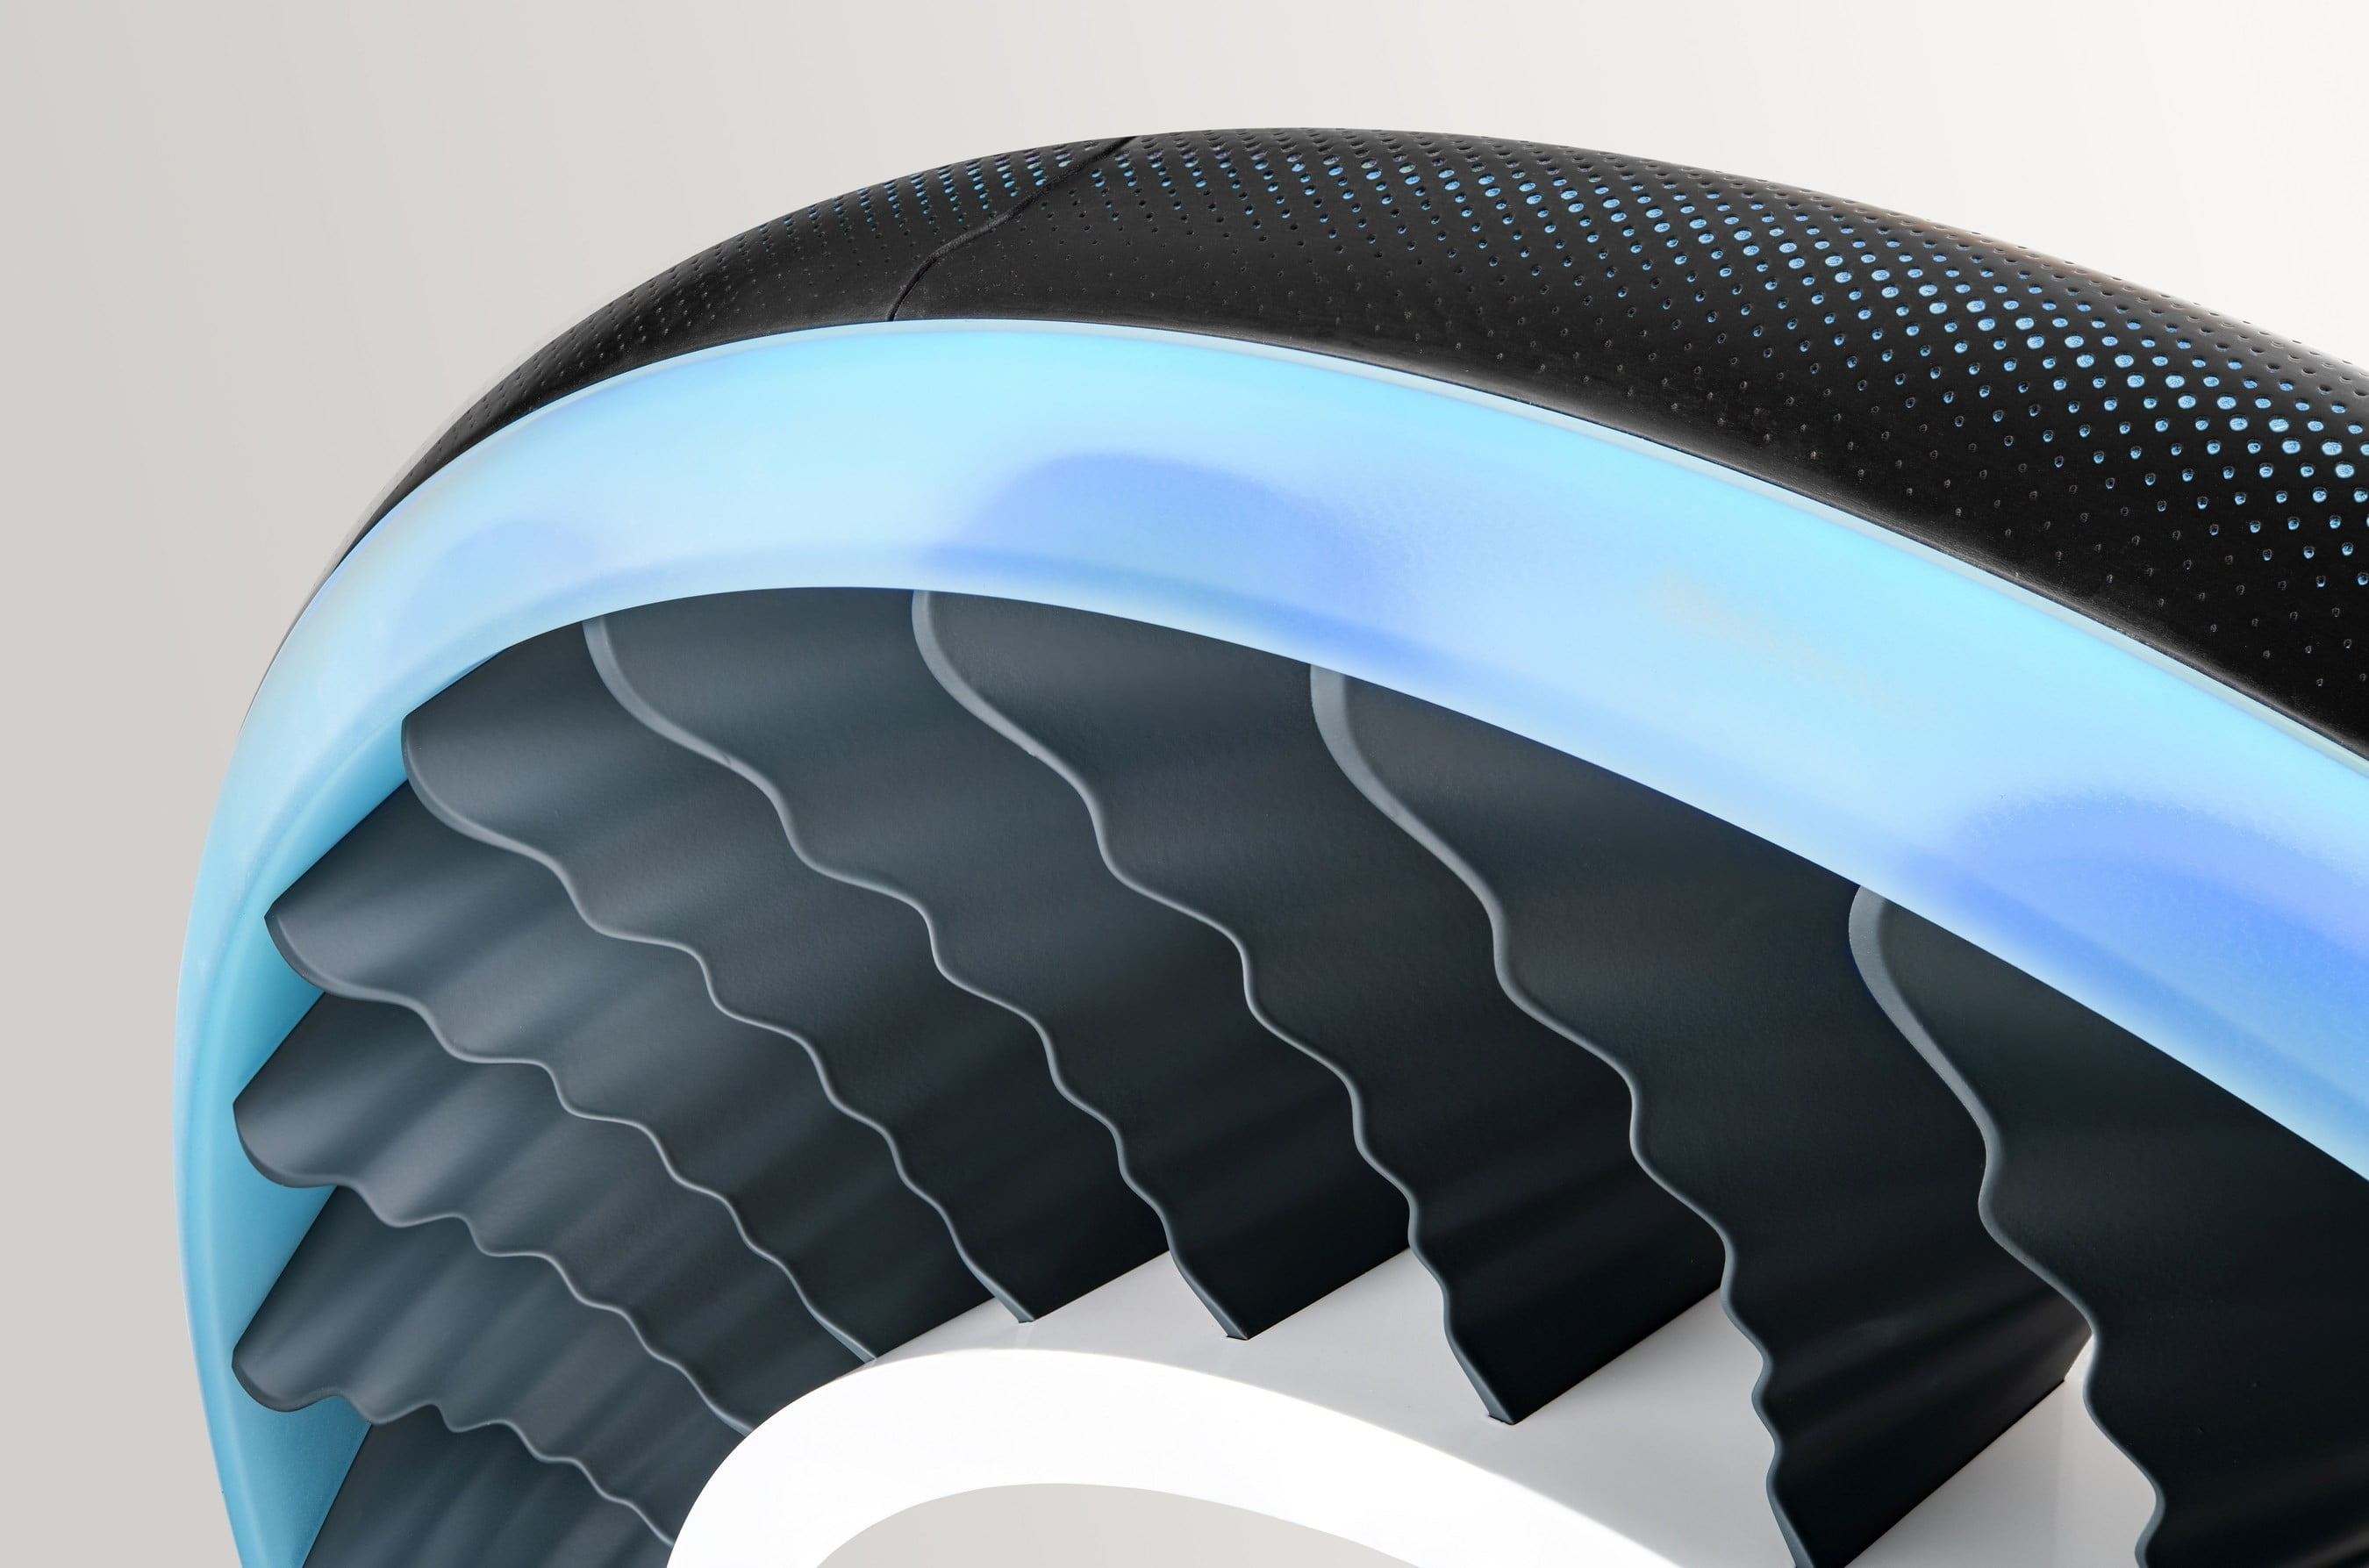 New Goodyear tires can turn into propellers for flying machines